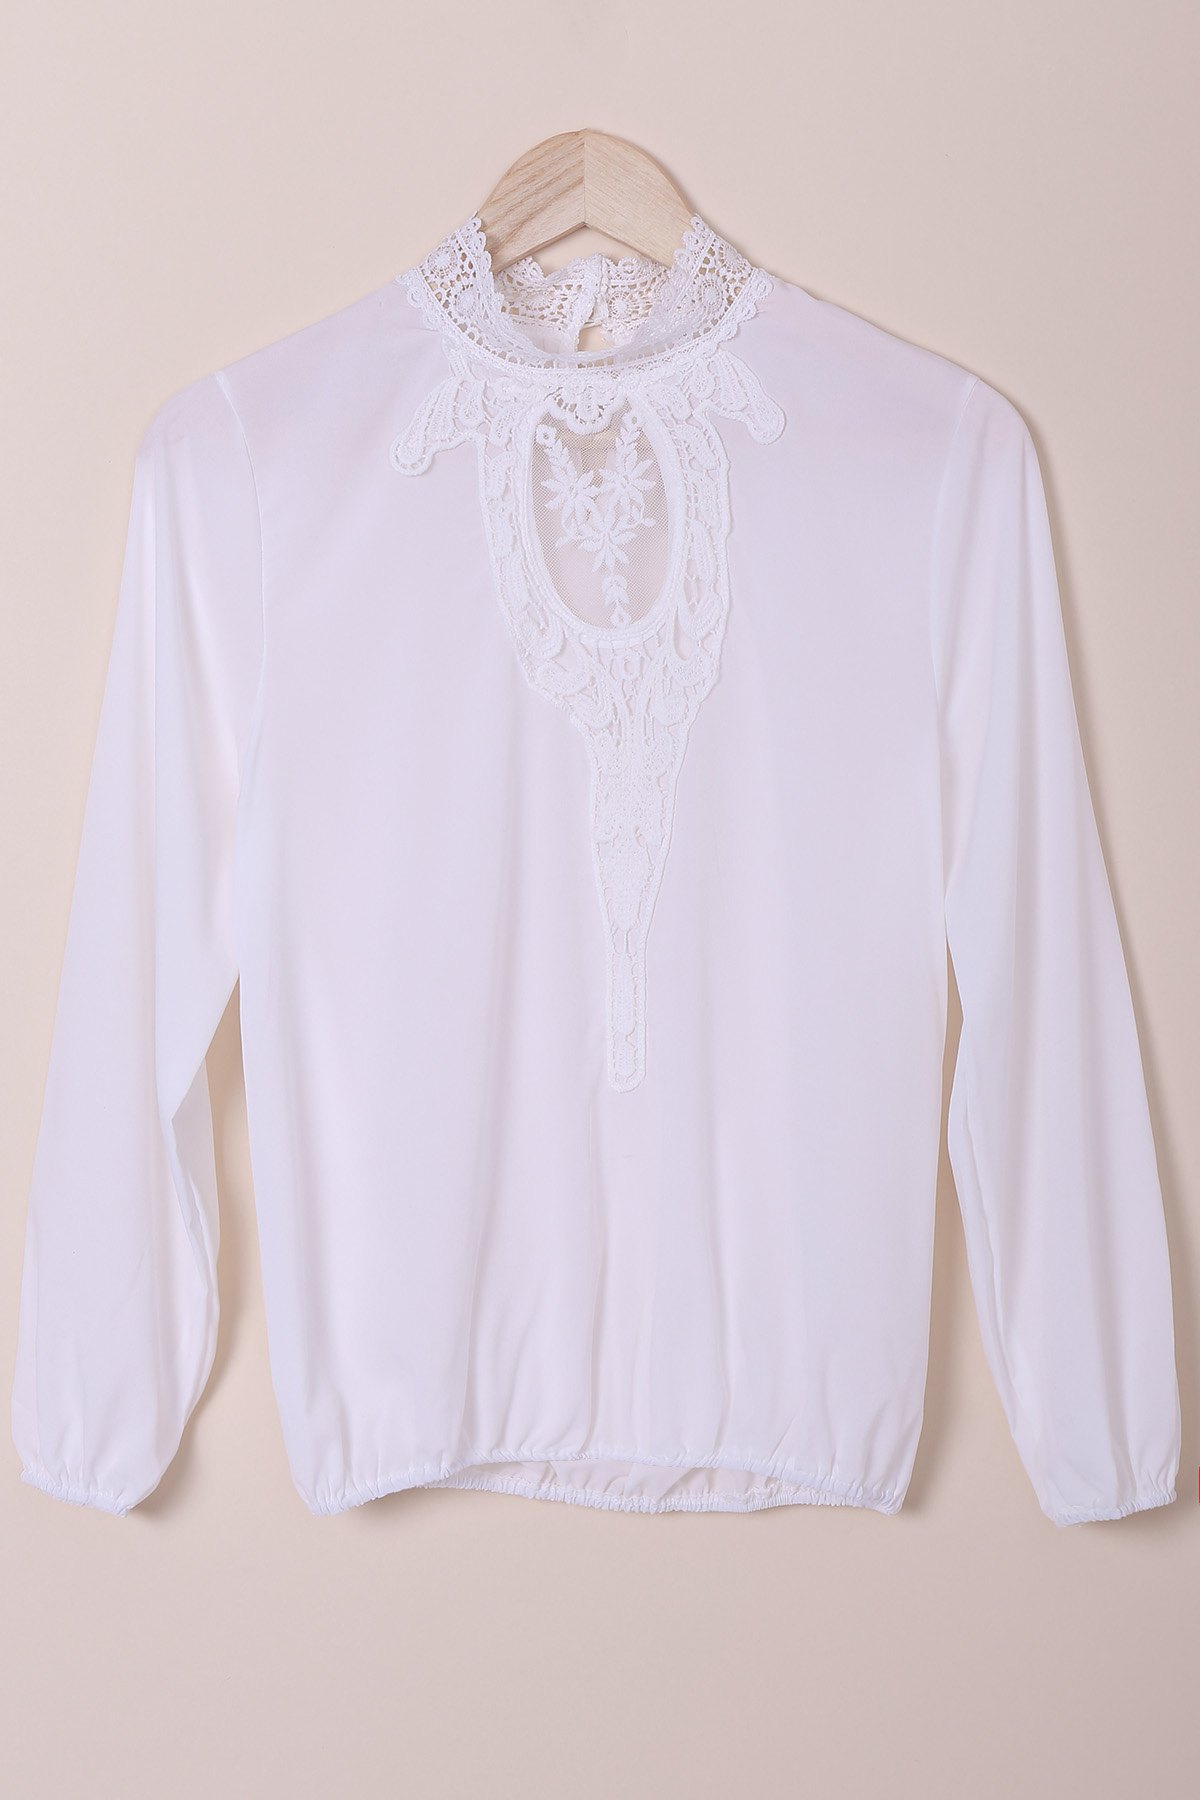 Stylish Stand-Up Collar Long Sleeve Hollow Out Crochet Womens BlouseWomen<br><br><br>Size: S<br>Color: WHITE